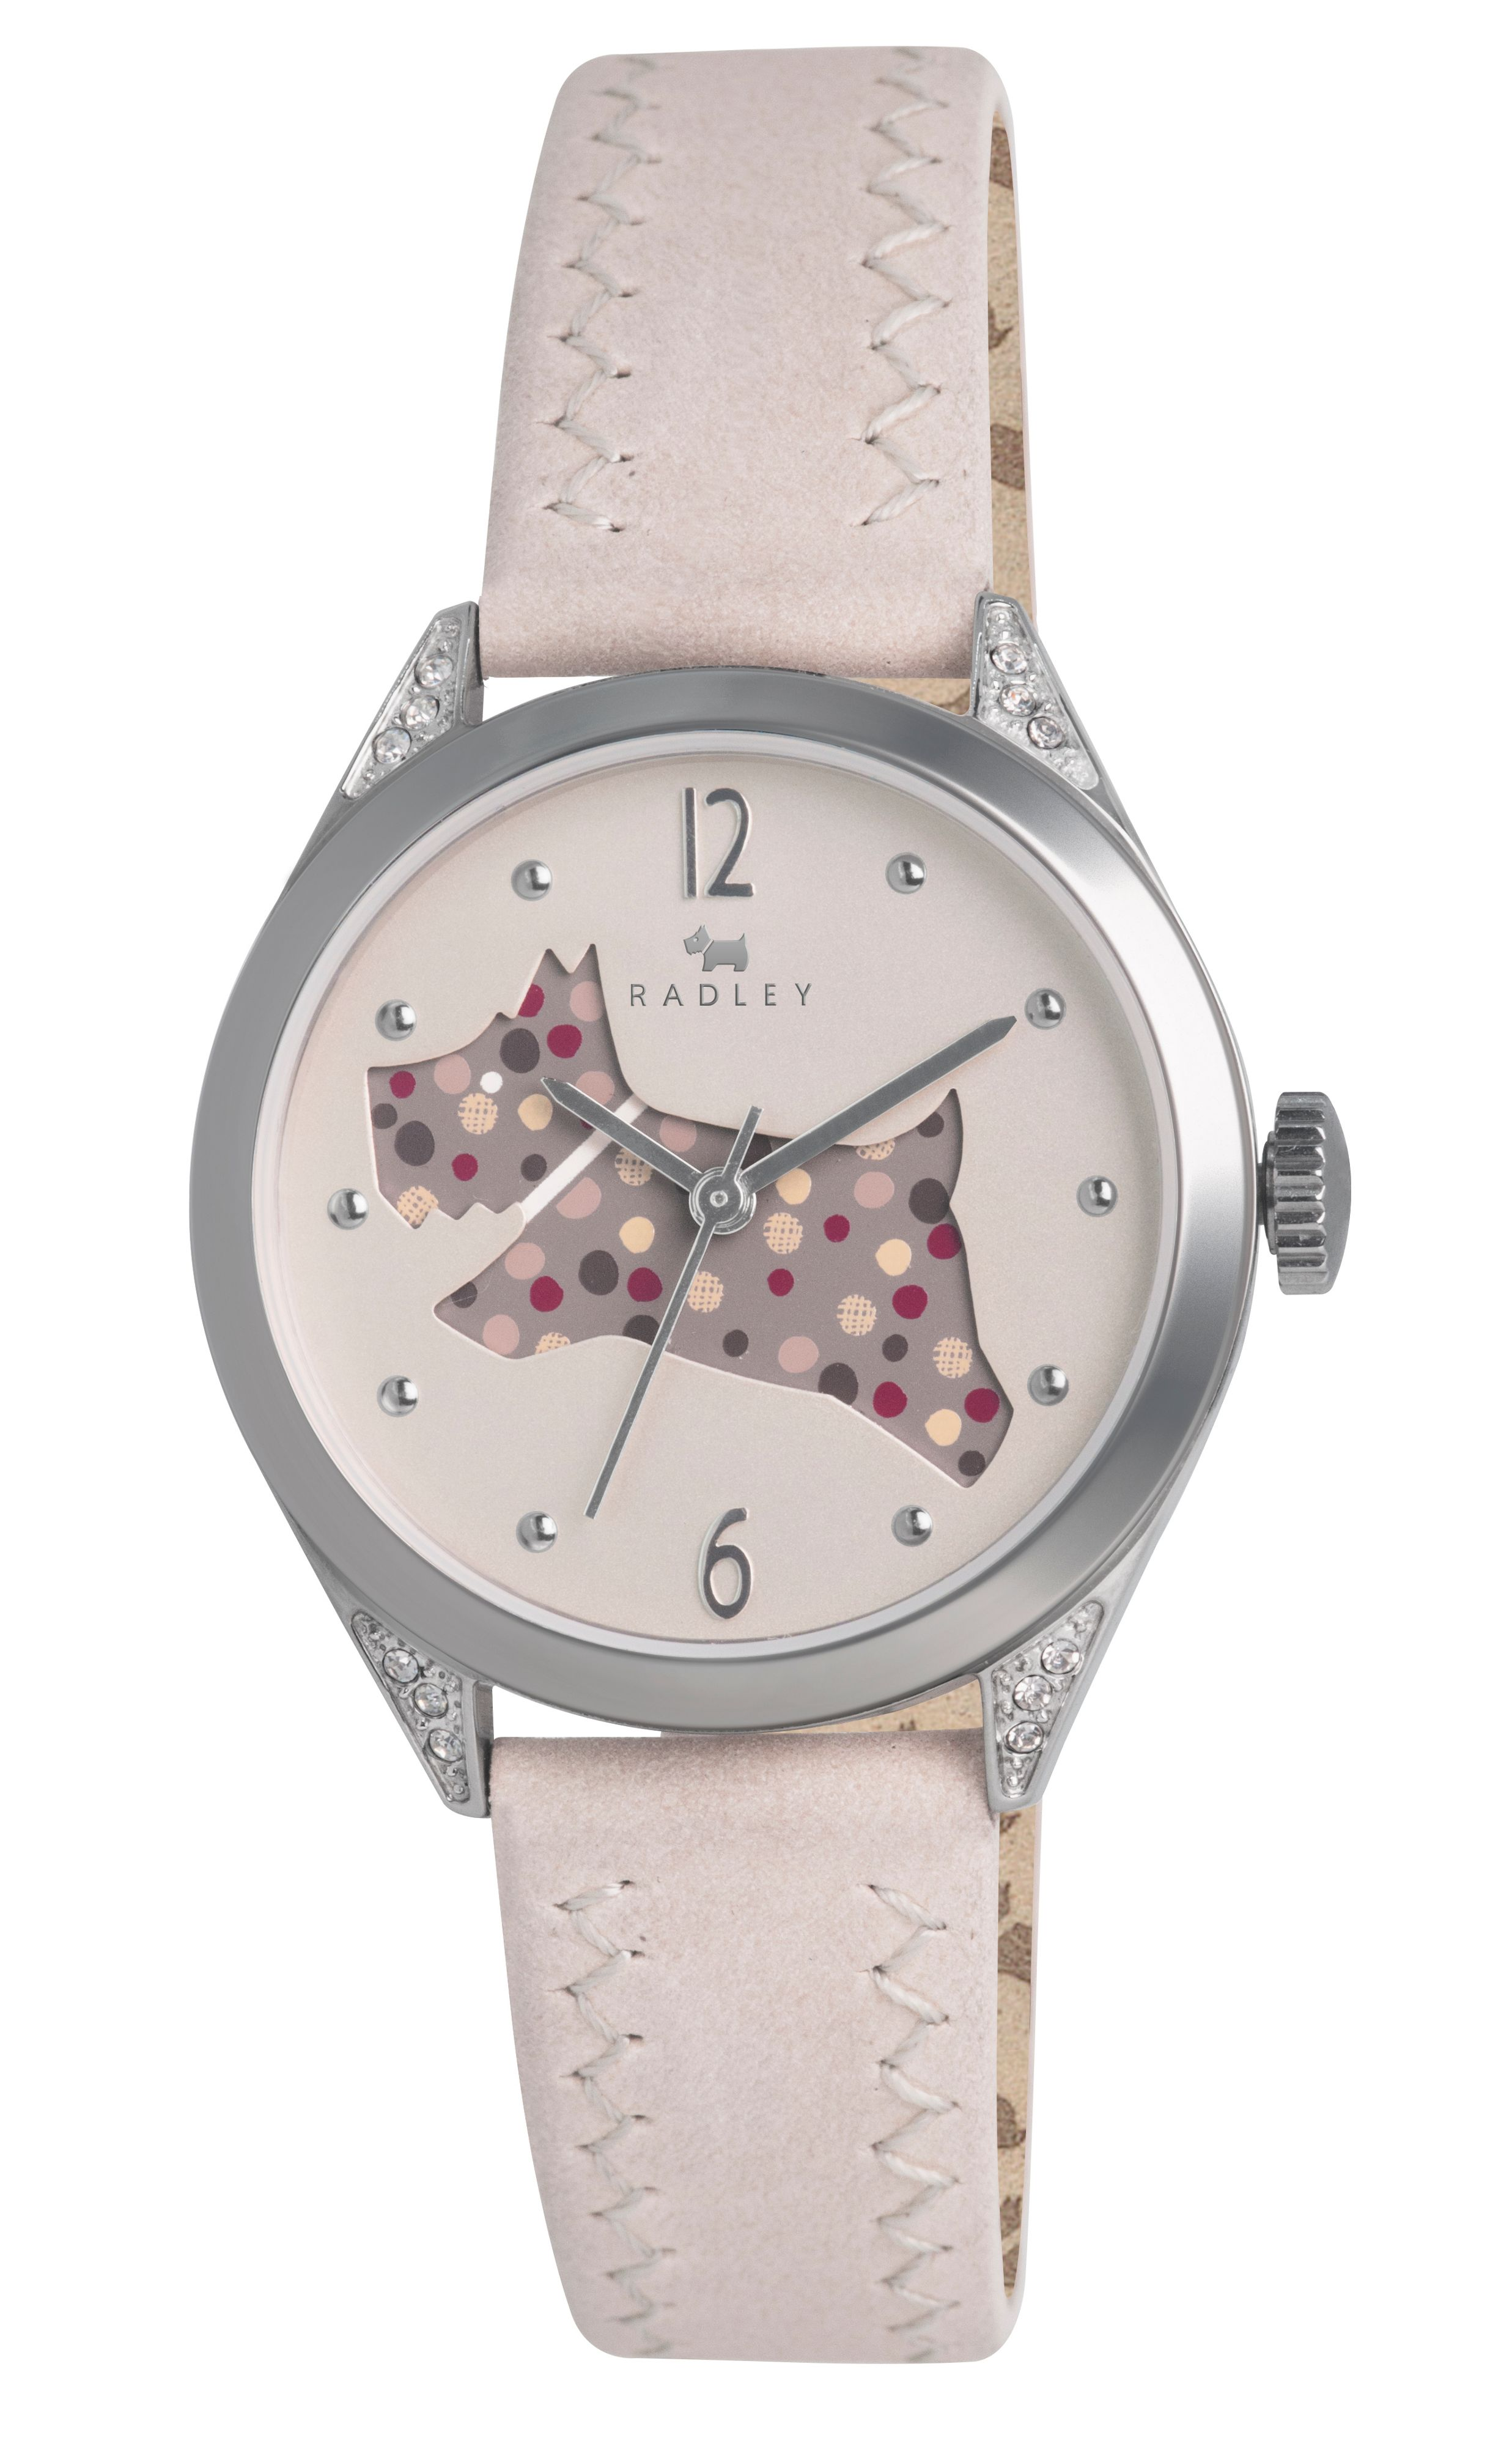 Radley cream cut through dog leather strap watch